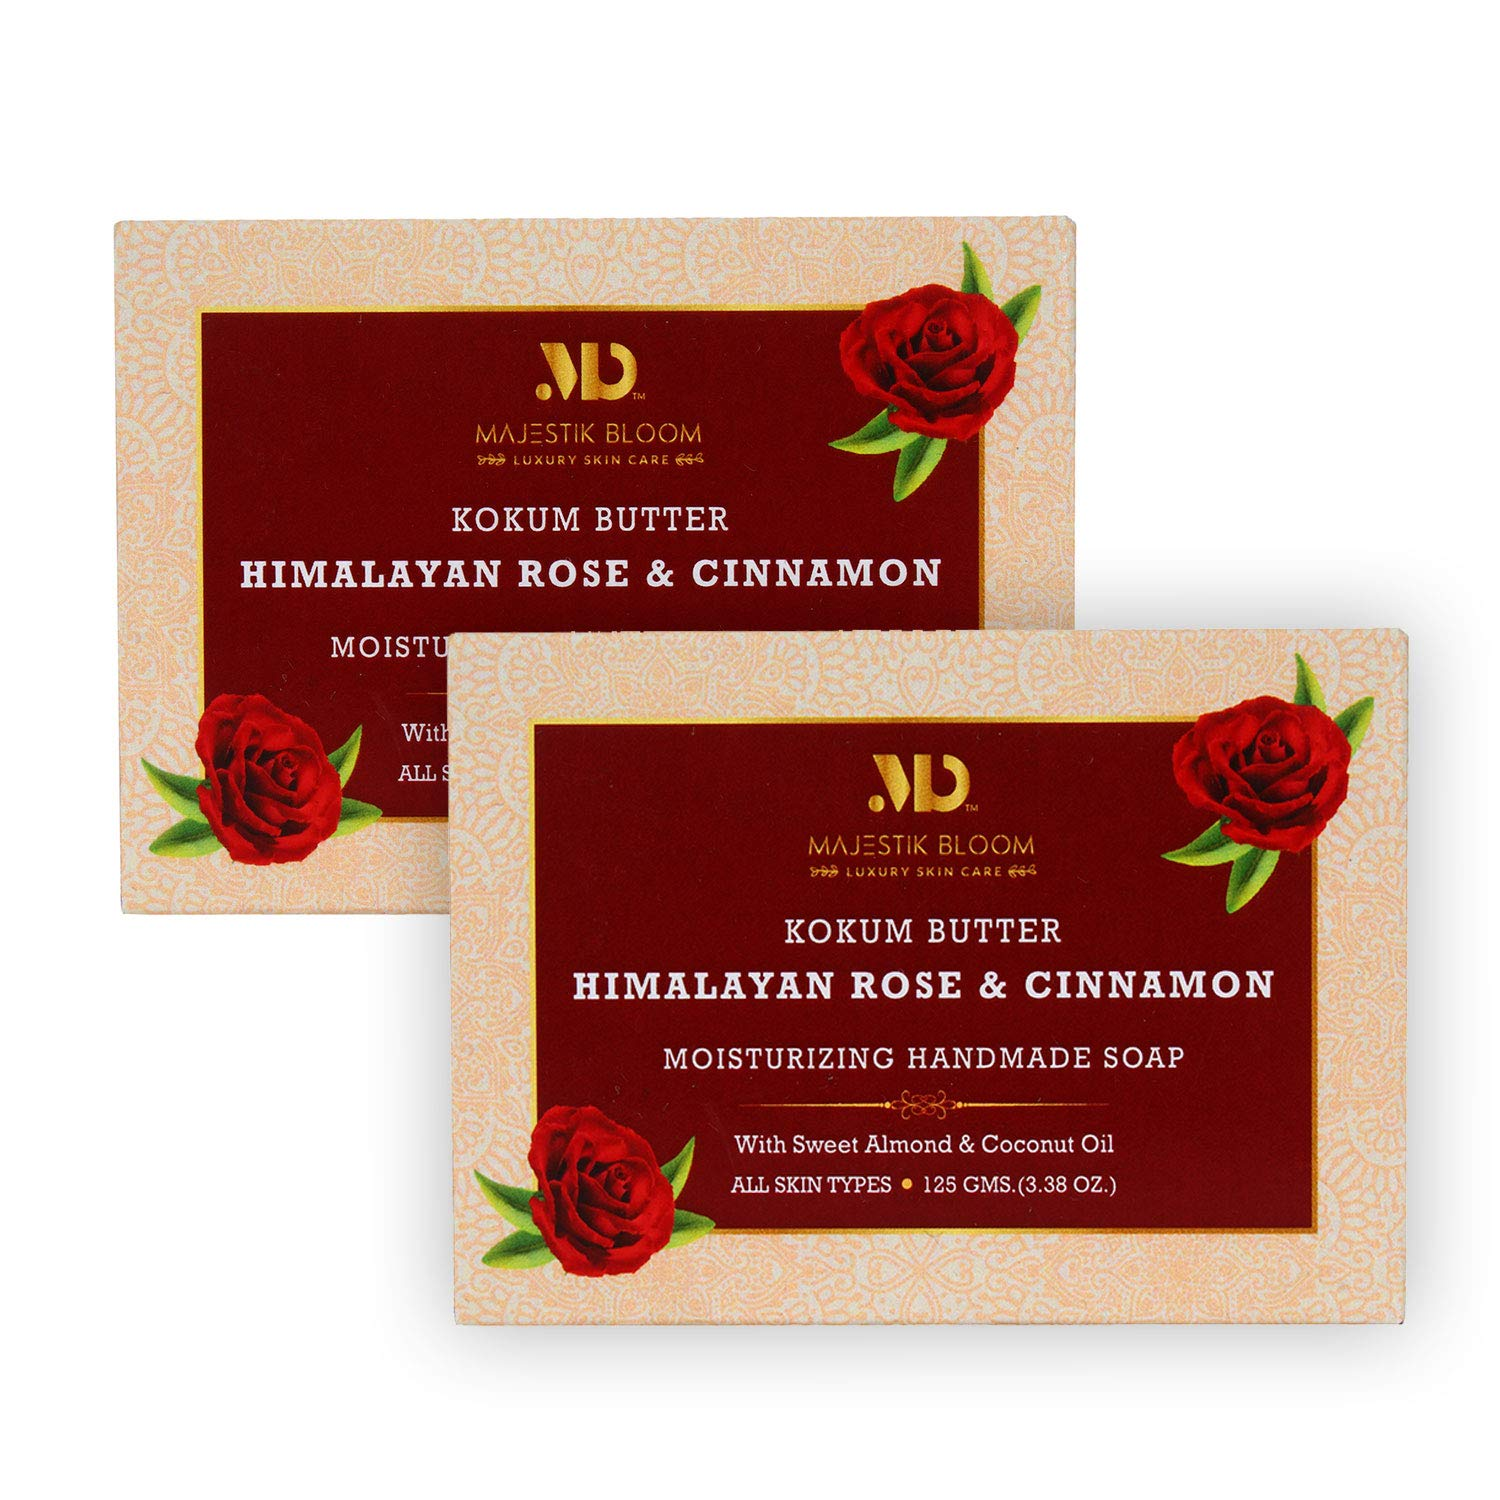 Majestik Bloom Himalayan Rose Natural Bar Soap, with Organic Sweet Almond & Coconut Oil, Nourishes Dry Skin & Sensitive Skin, Face & Body Soap, Vegan & Fragrance Free, 125 g (Pack of 2)